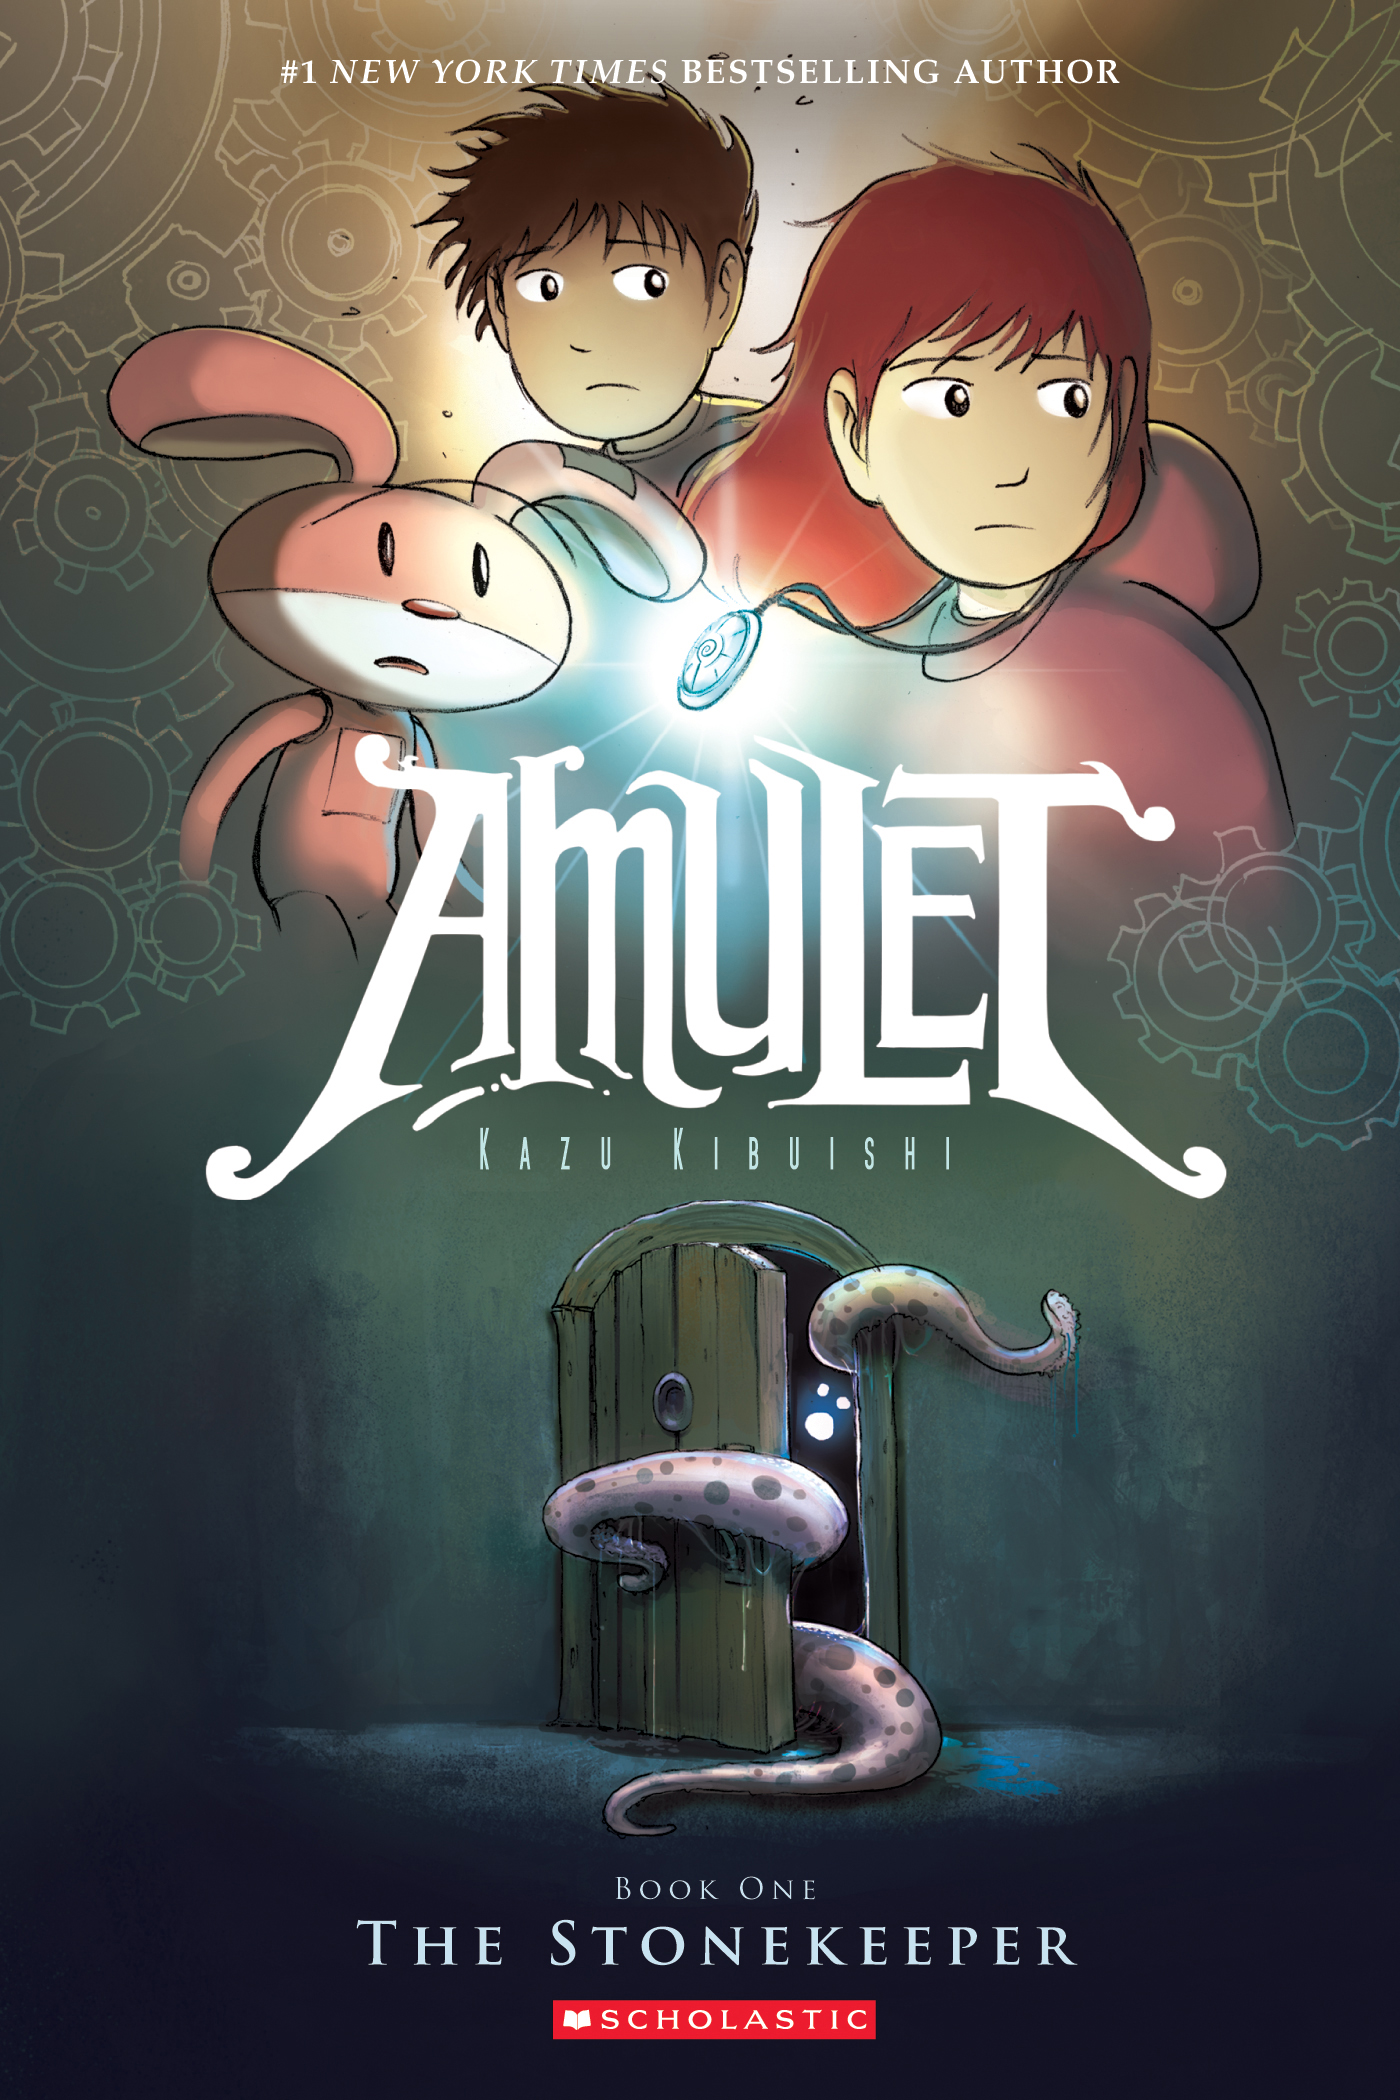 Cover Image of The Stonekeeper (Amulet #1)